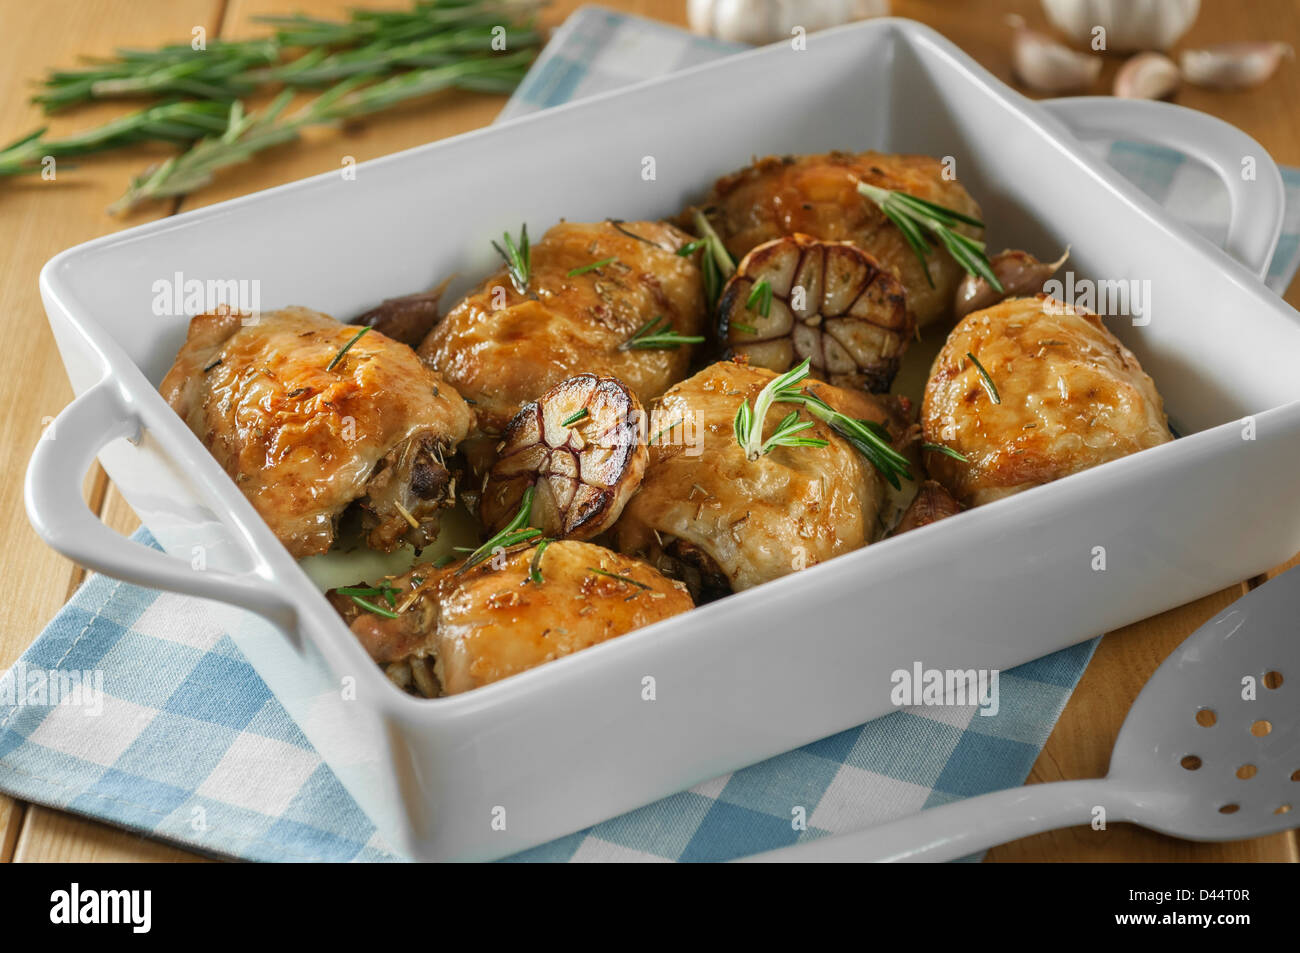 Roast chicken with rosemary and garlic - Stock Image